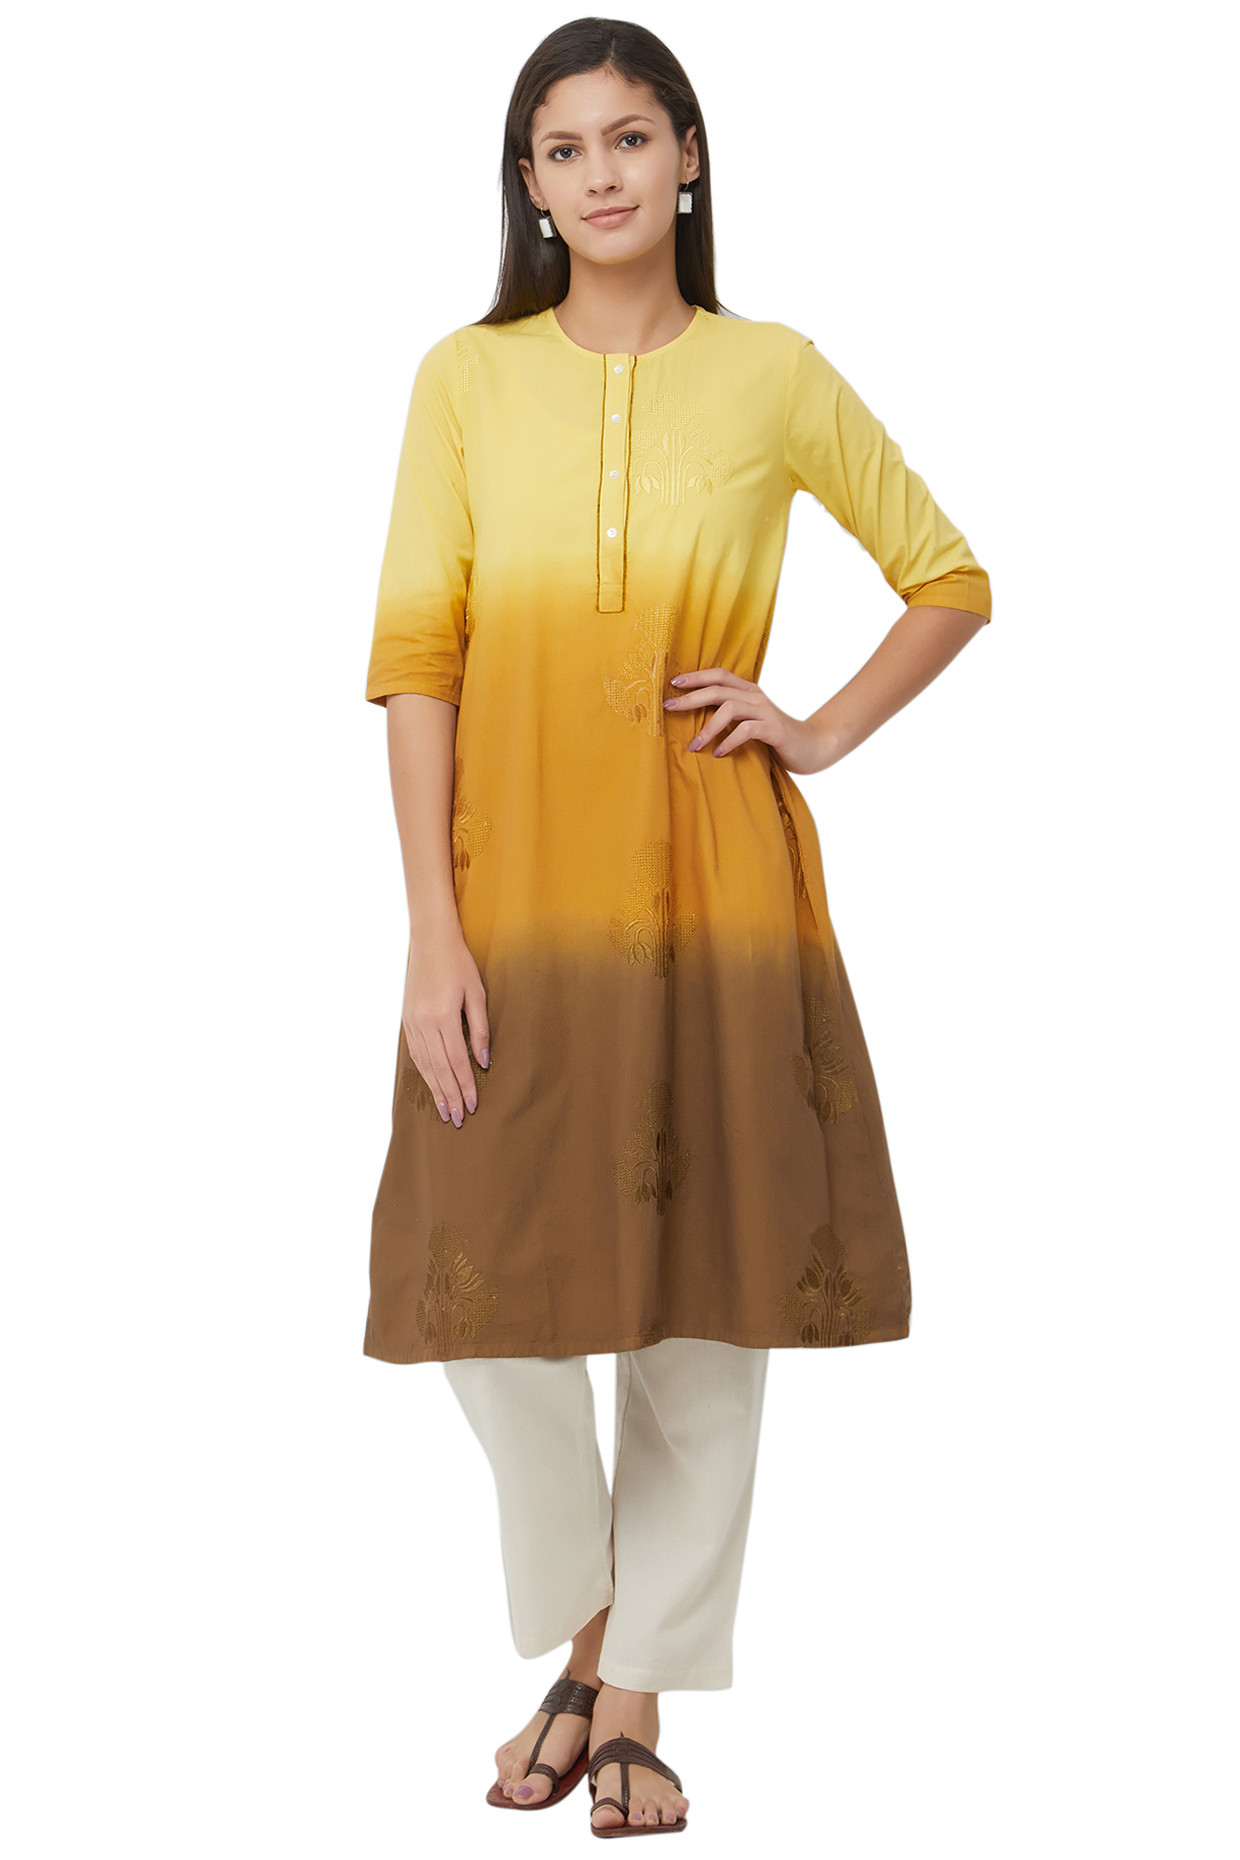 Multicolored Mellow Yellow Tie Dyed Cotton Kurti by House Of Idar